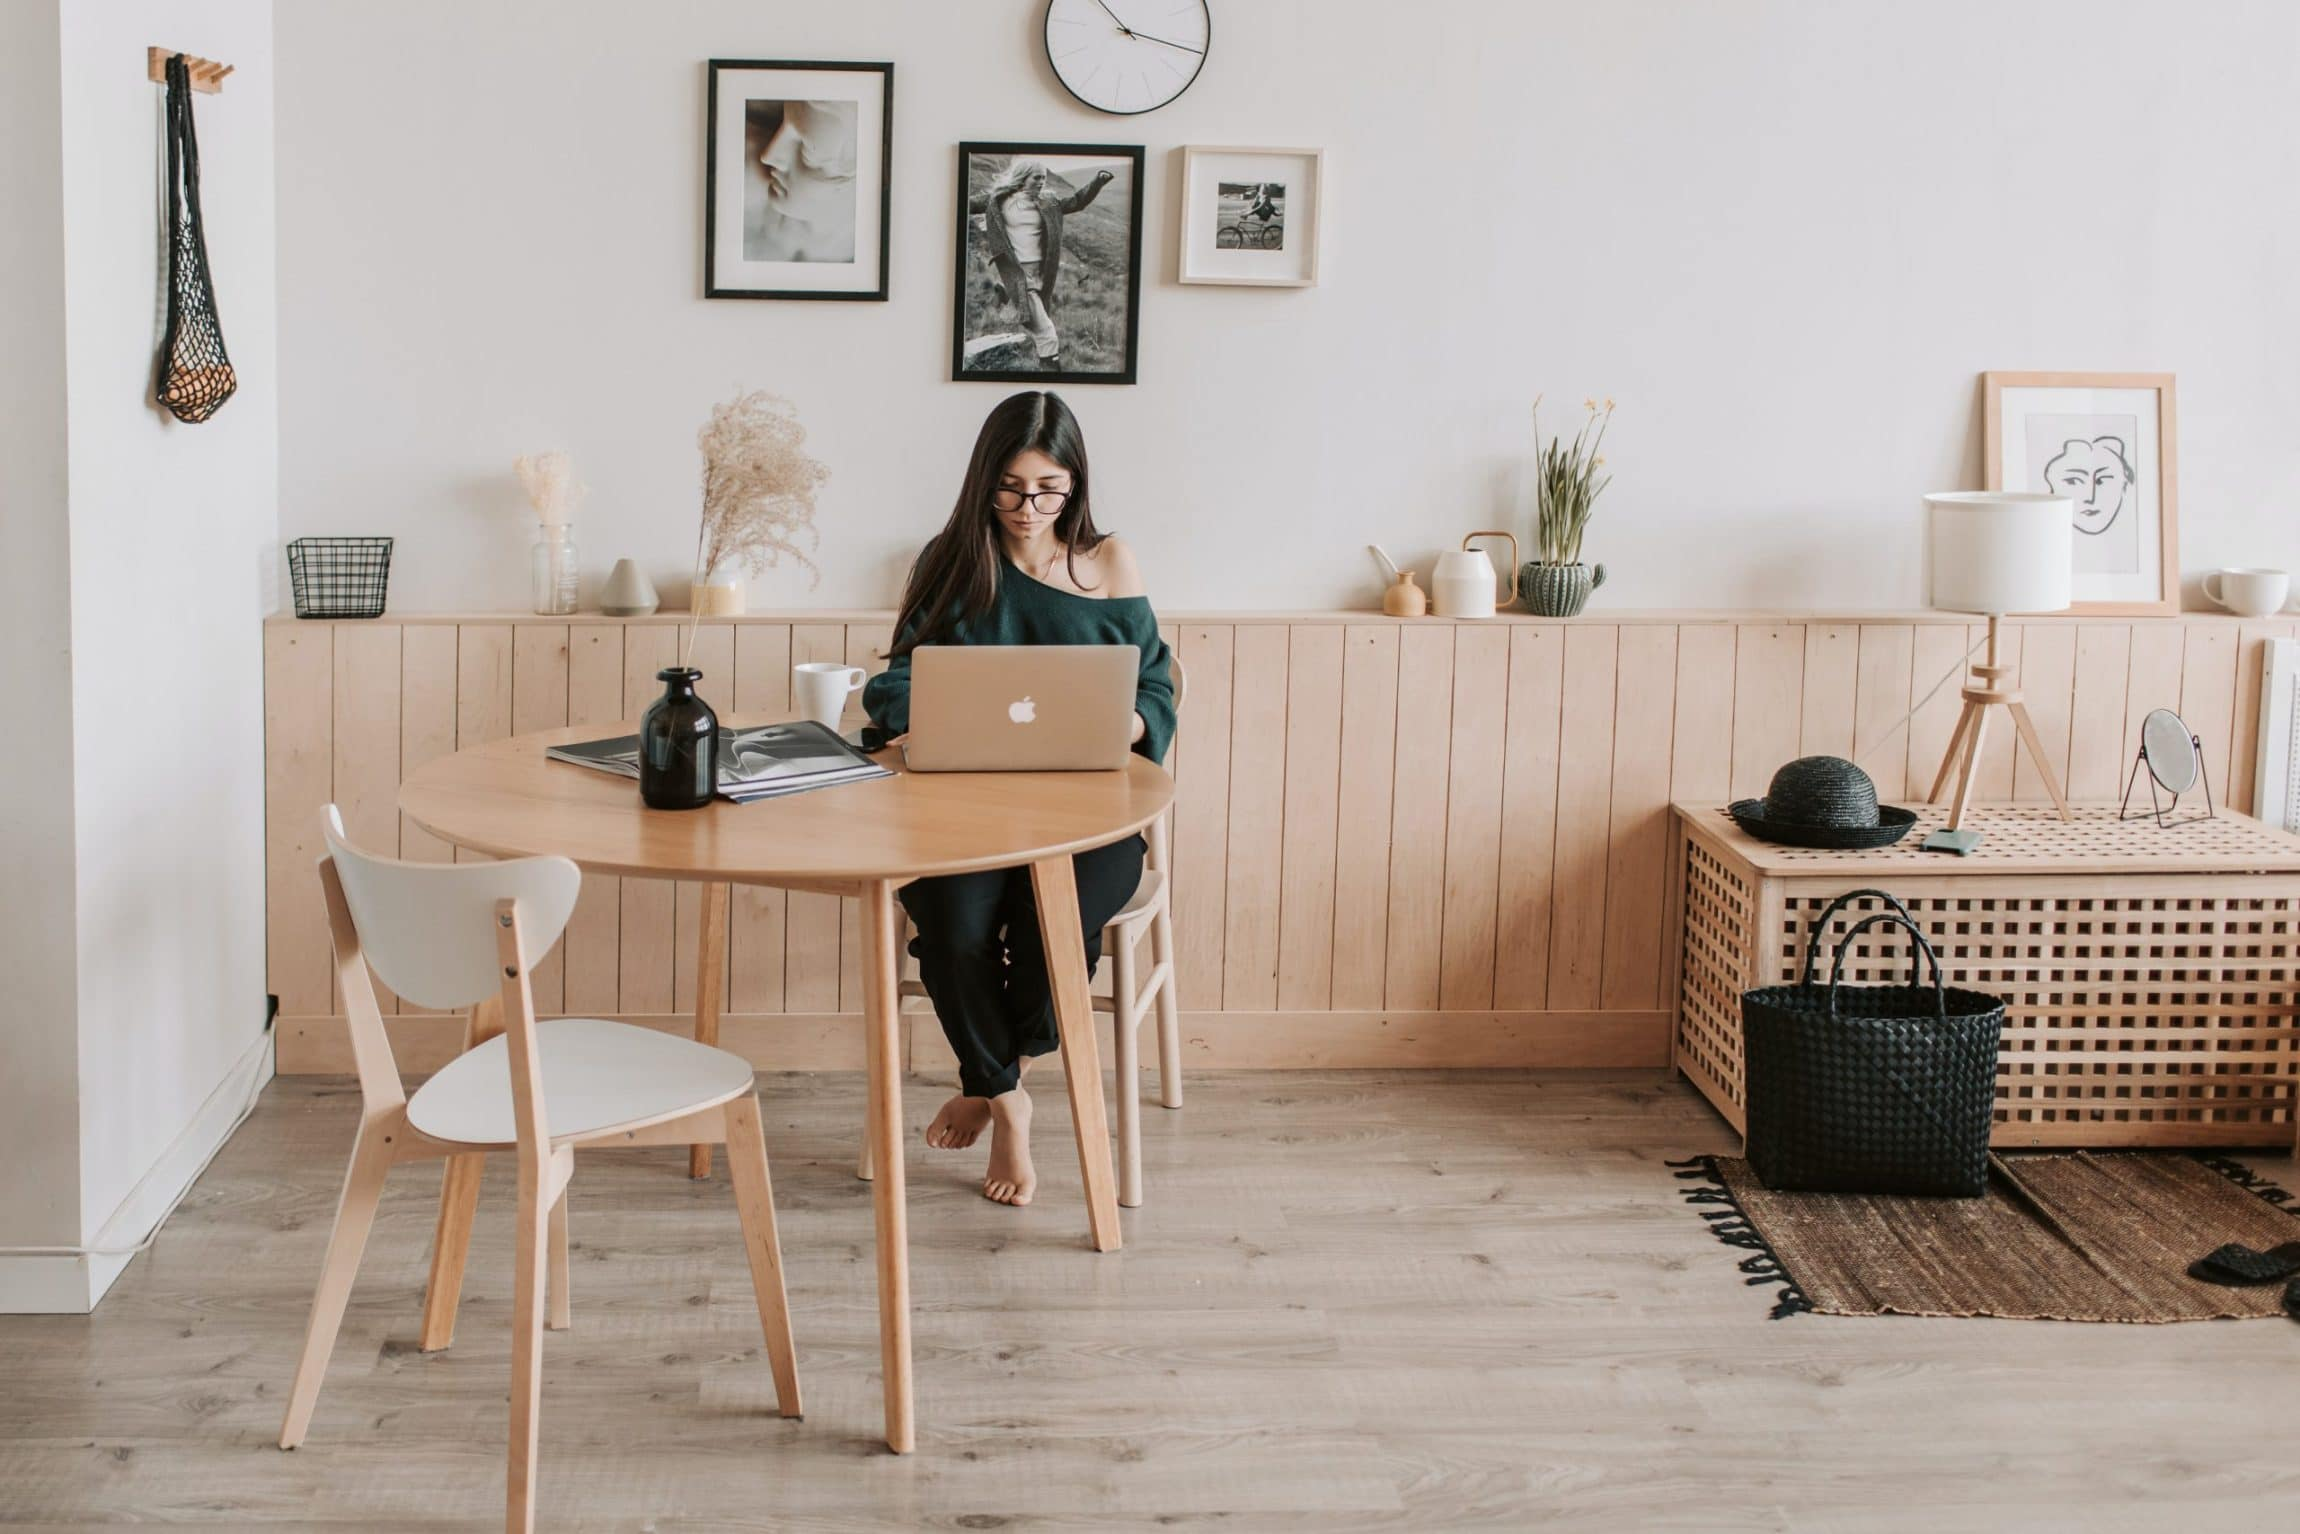 5 Minimalist Lifestyle Benefits: There's More With Less